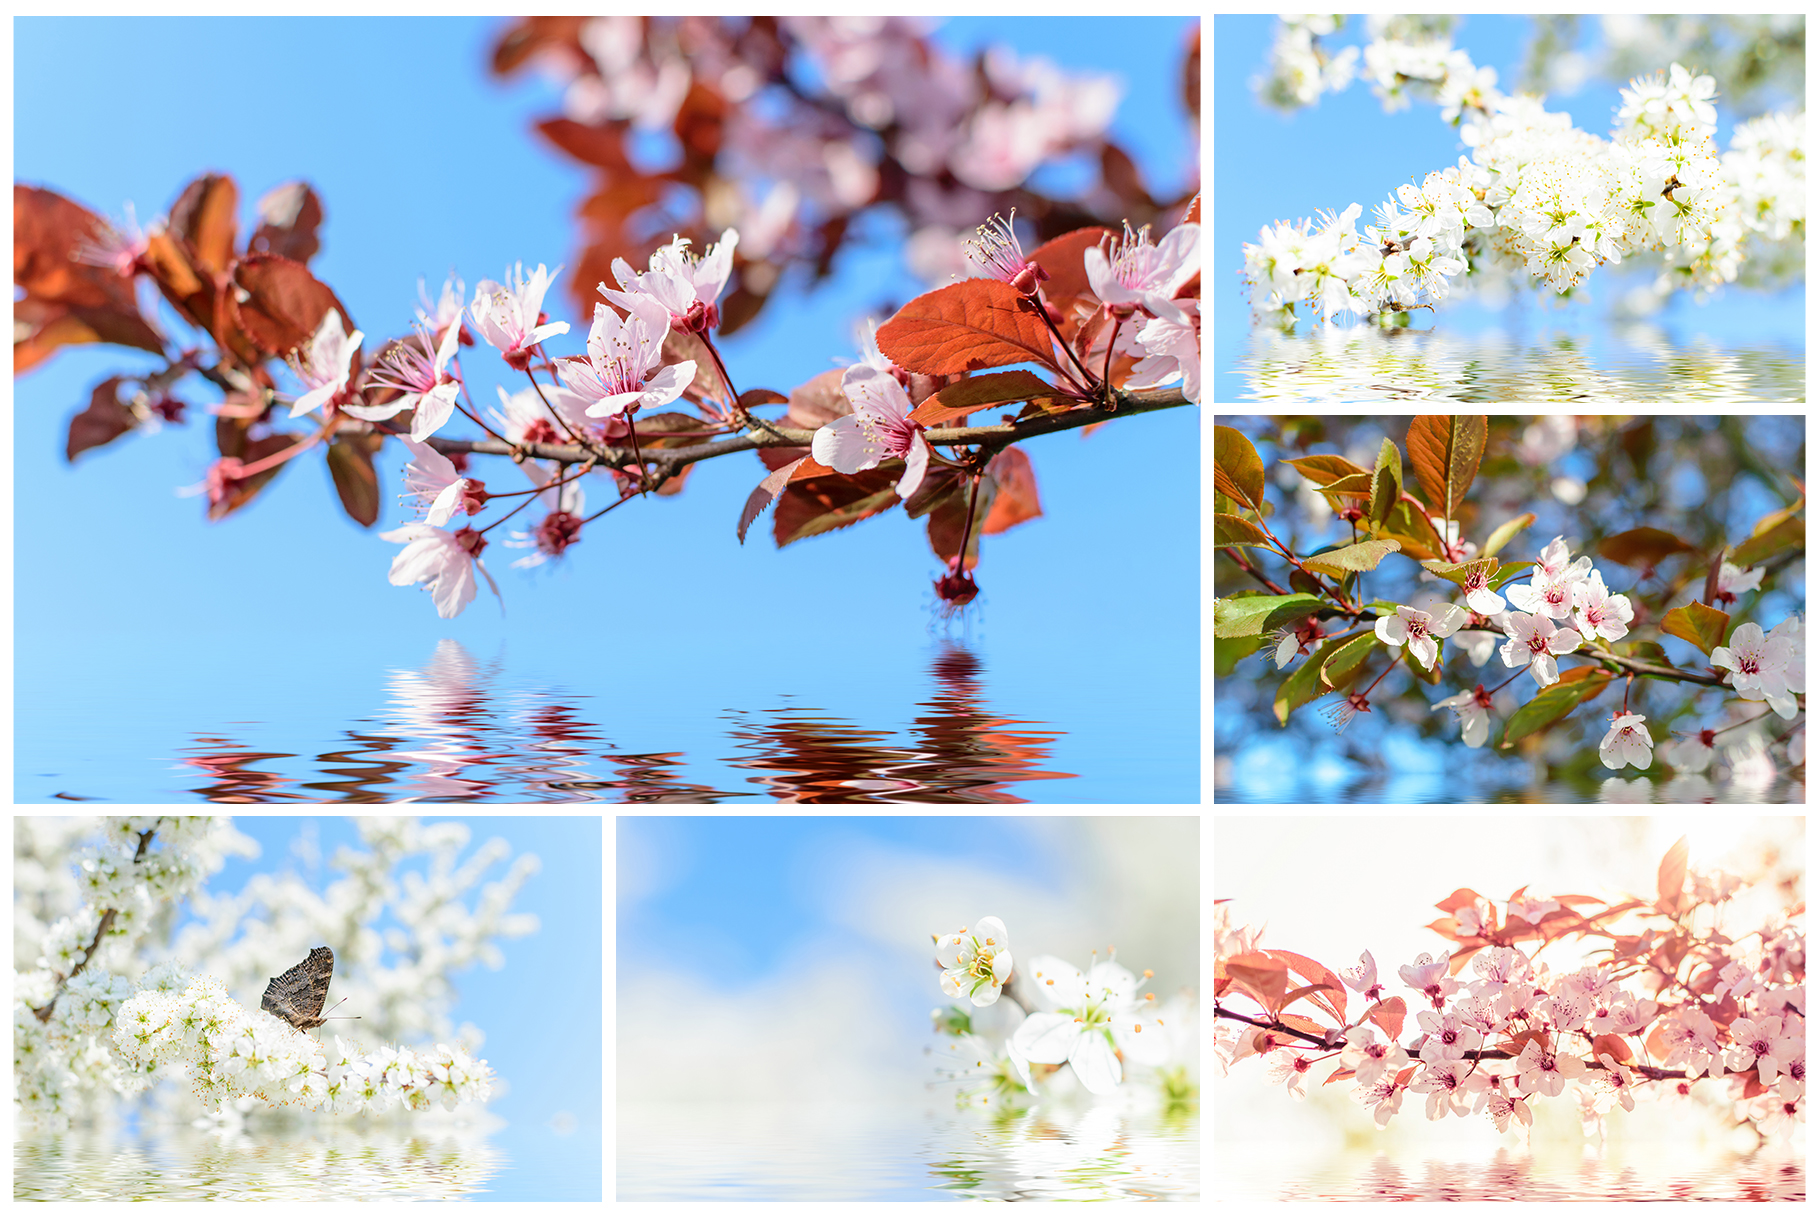 Spring Flowers and Paintings Bundle example image 5